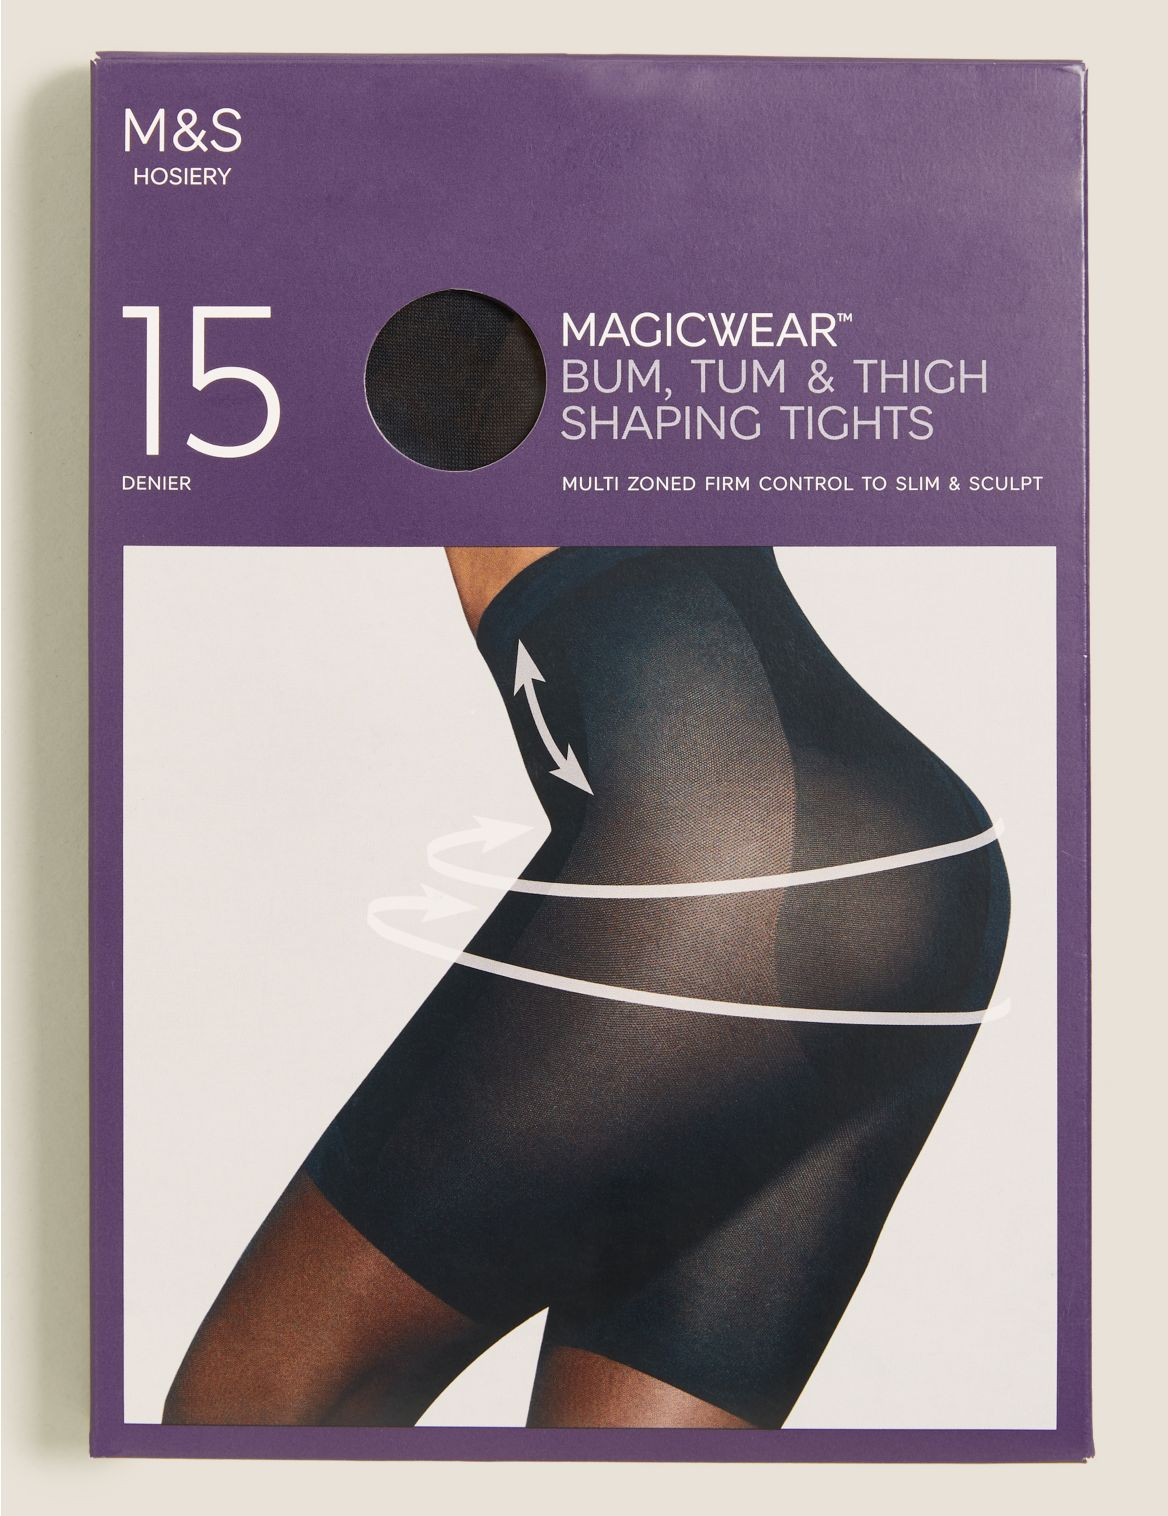 15 Denier Magicwear™ Shine Body Shaper Tights black